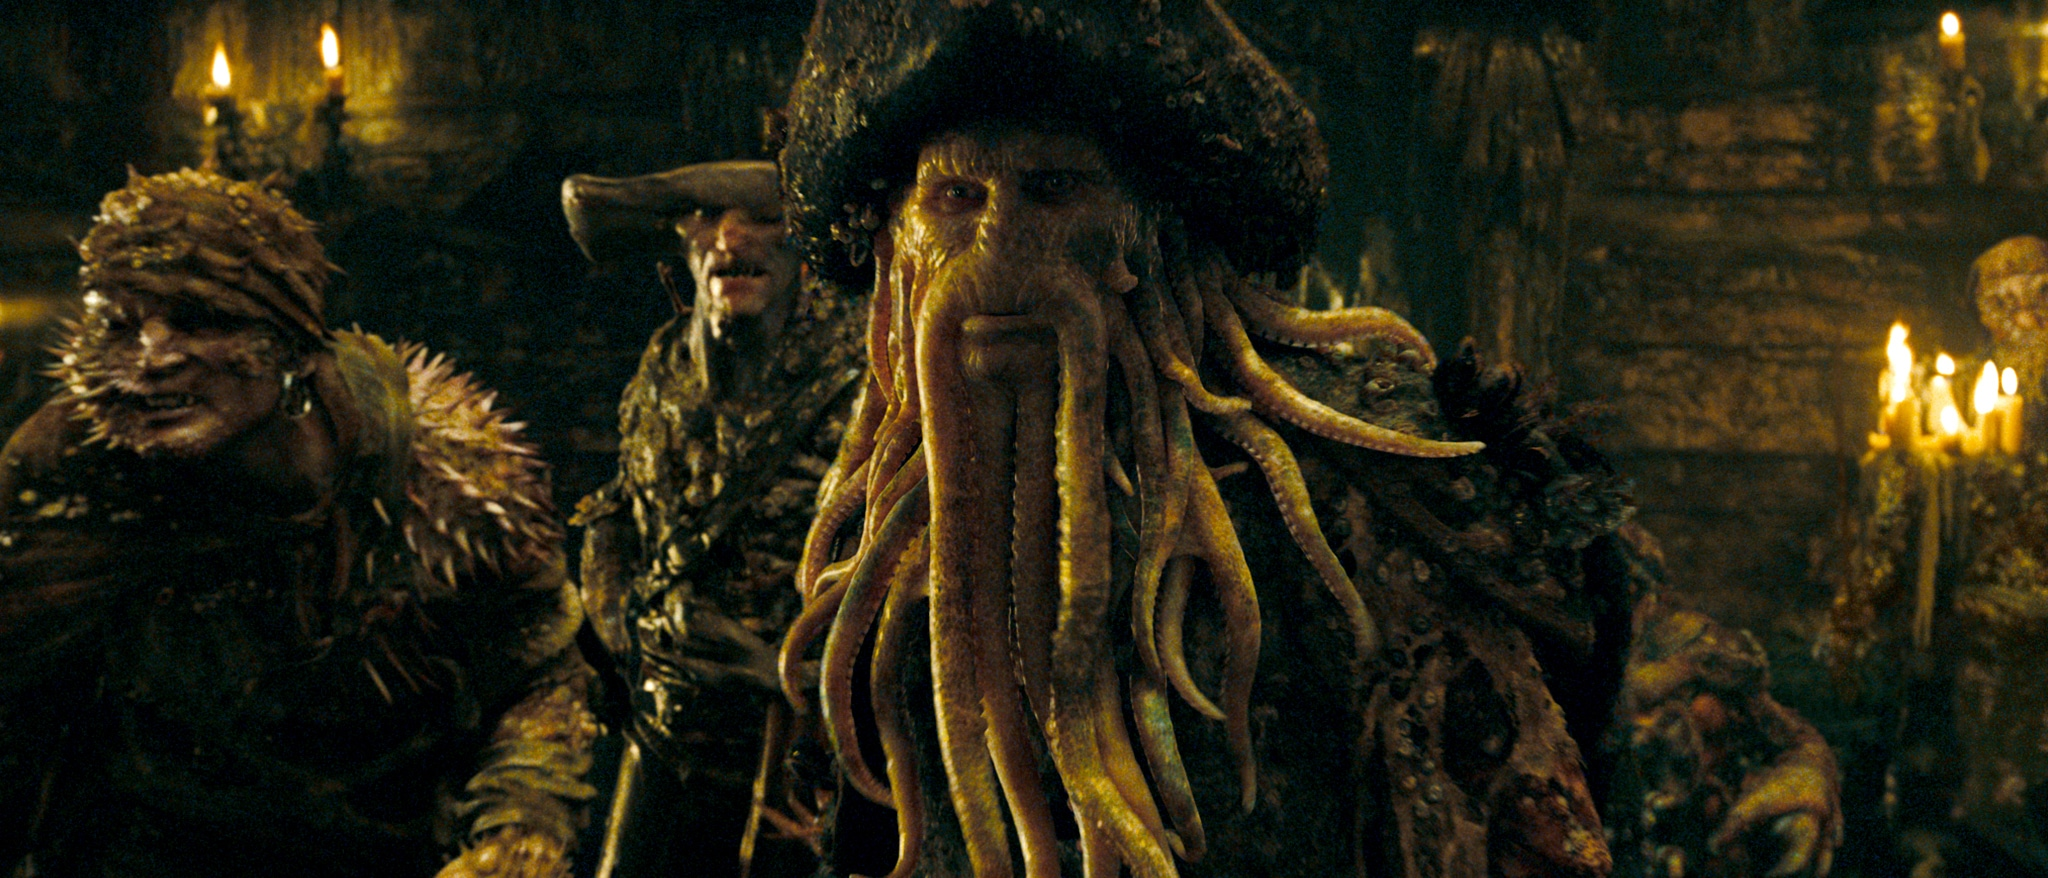 Pirates of the Caribbean: At World's End Hero